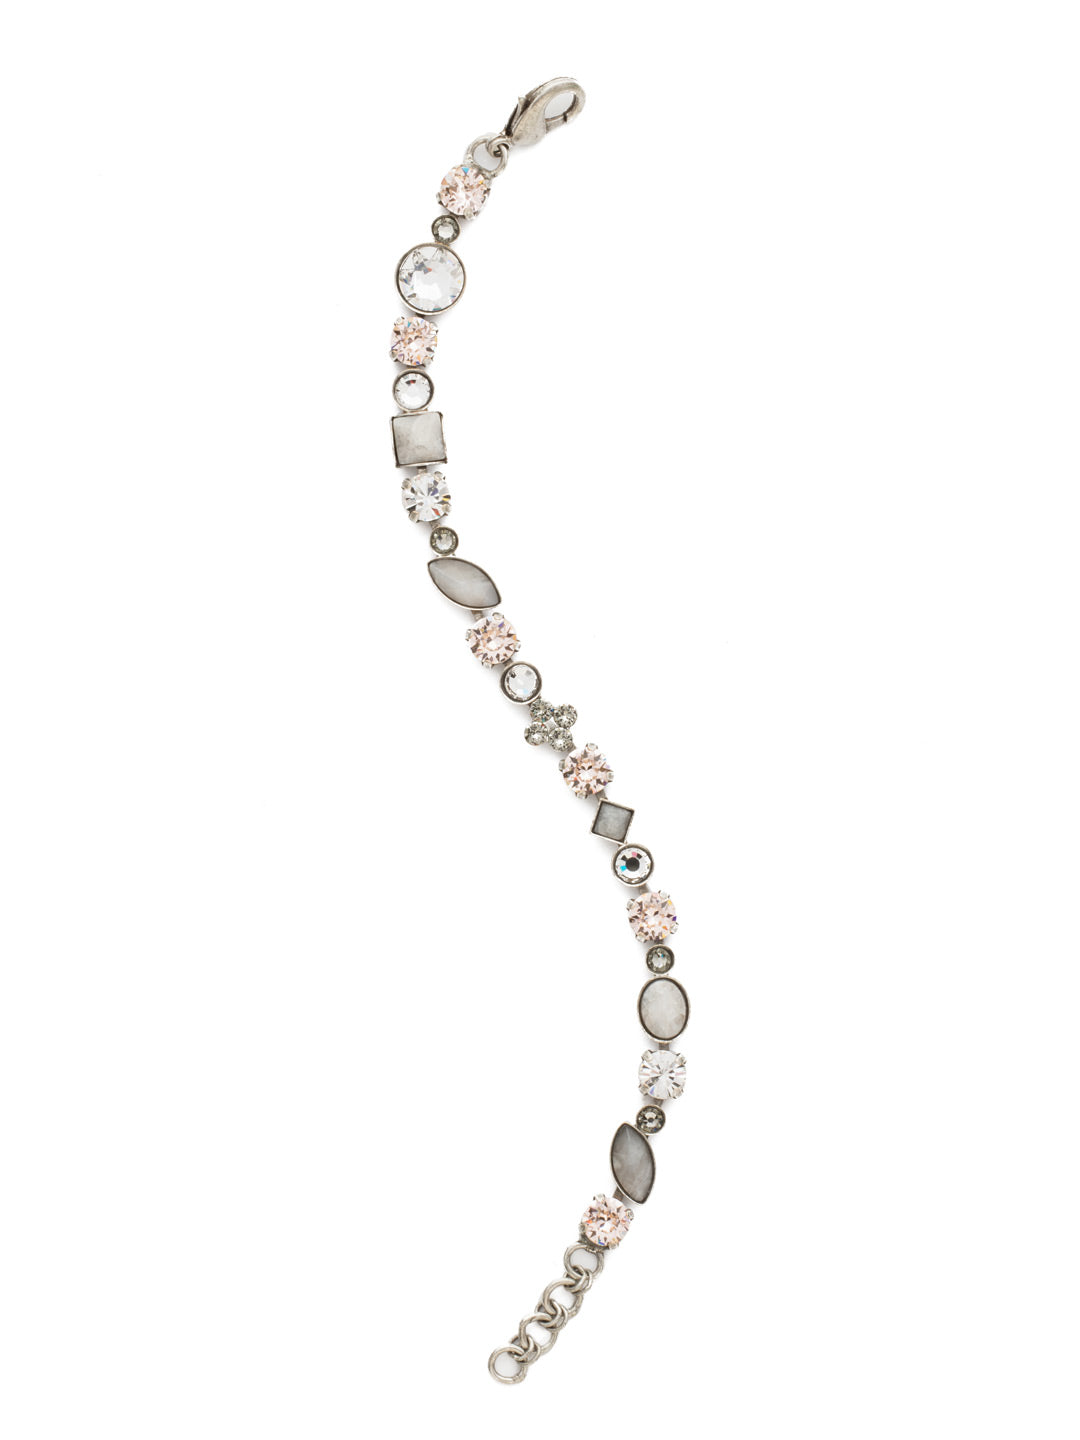 Crystal and Cabochon Tennis Bracelet - BAQ3ASSNB